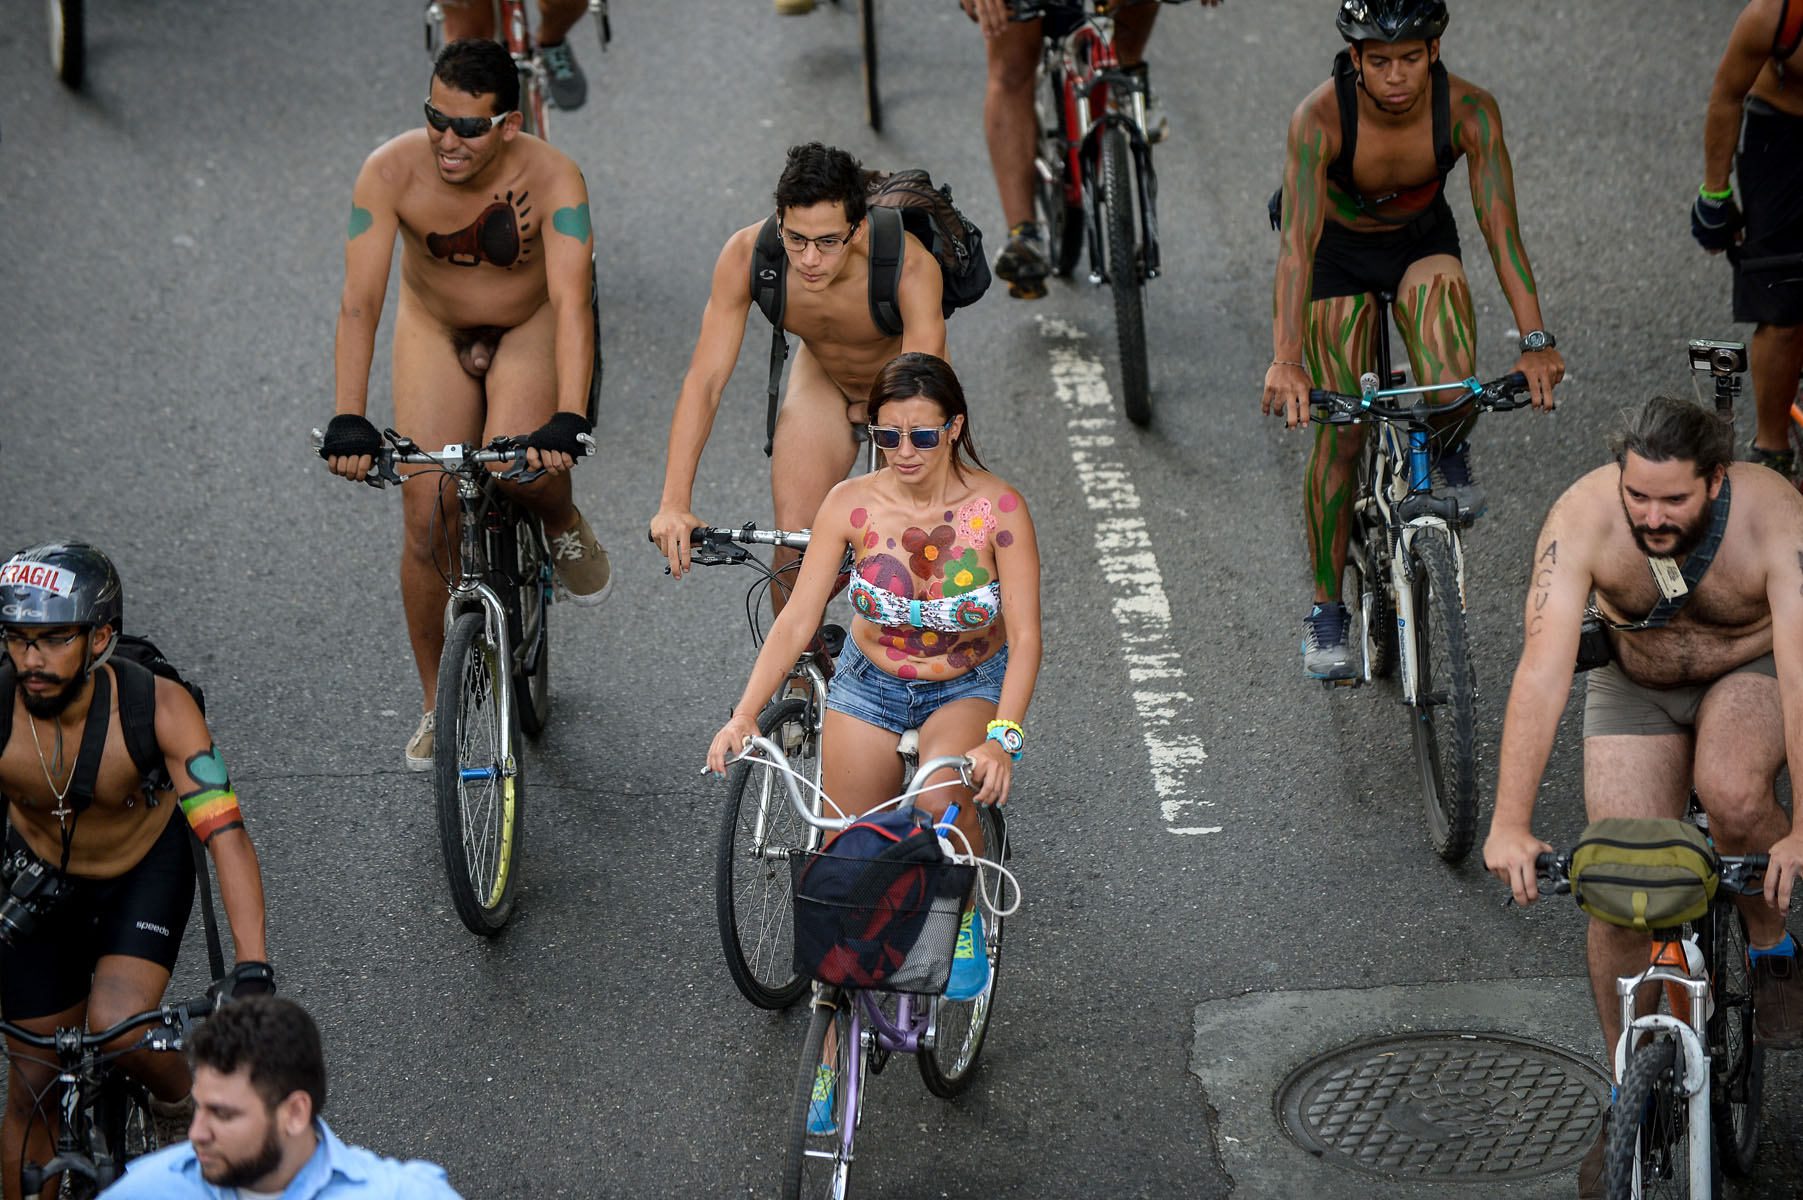 Cyclists bare for fourth annual cardiff world naked bike ride